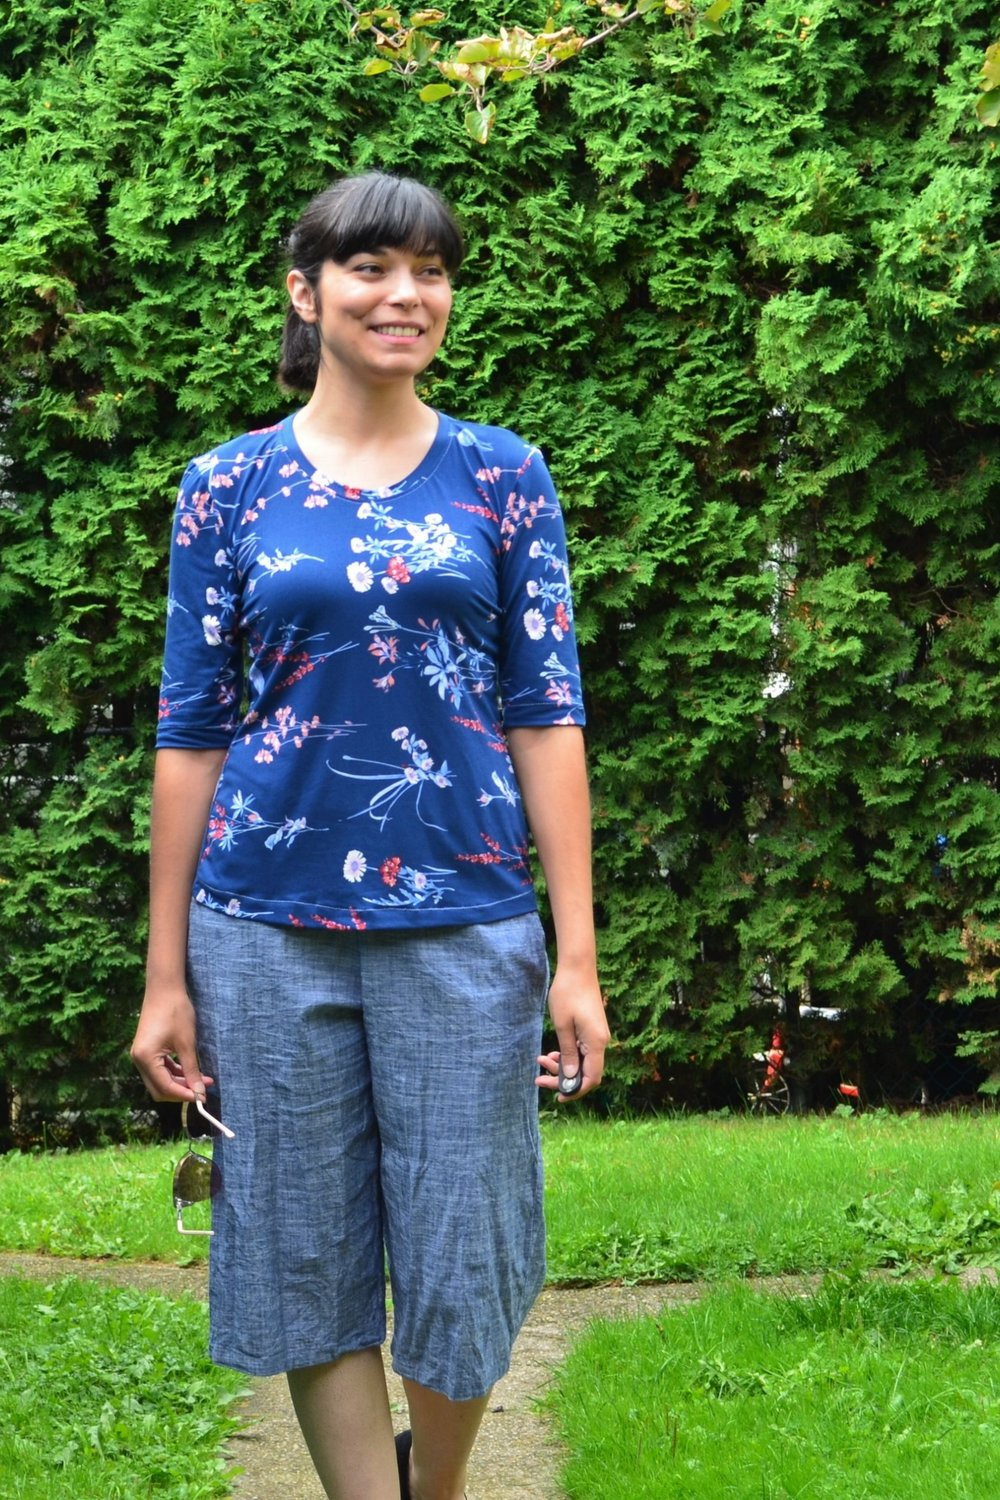 Short Sleeves Knit Top from DG Patterns